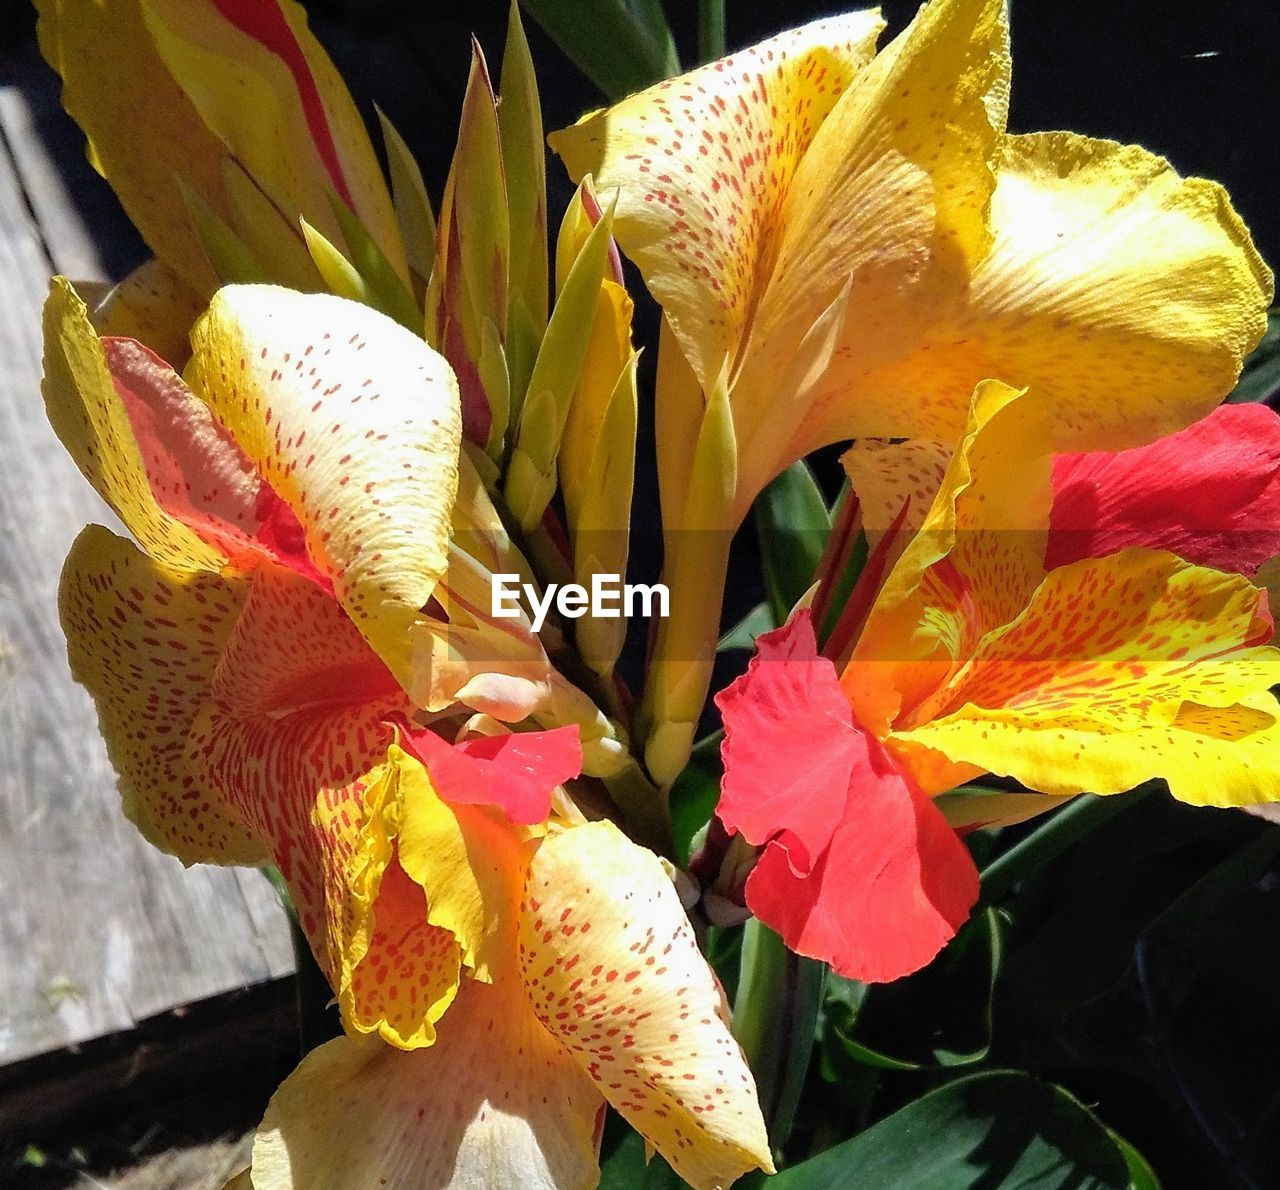 Close-Up Of Day Lily Blooming Outdoors